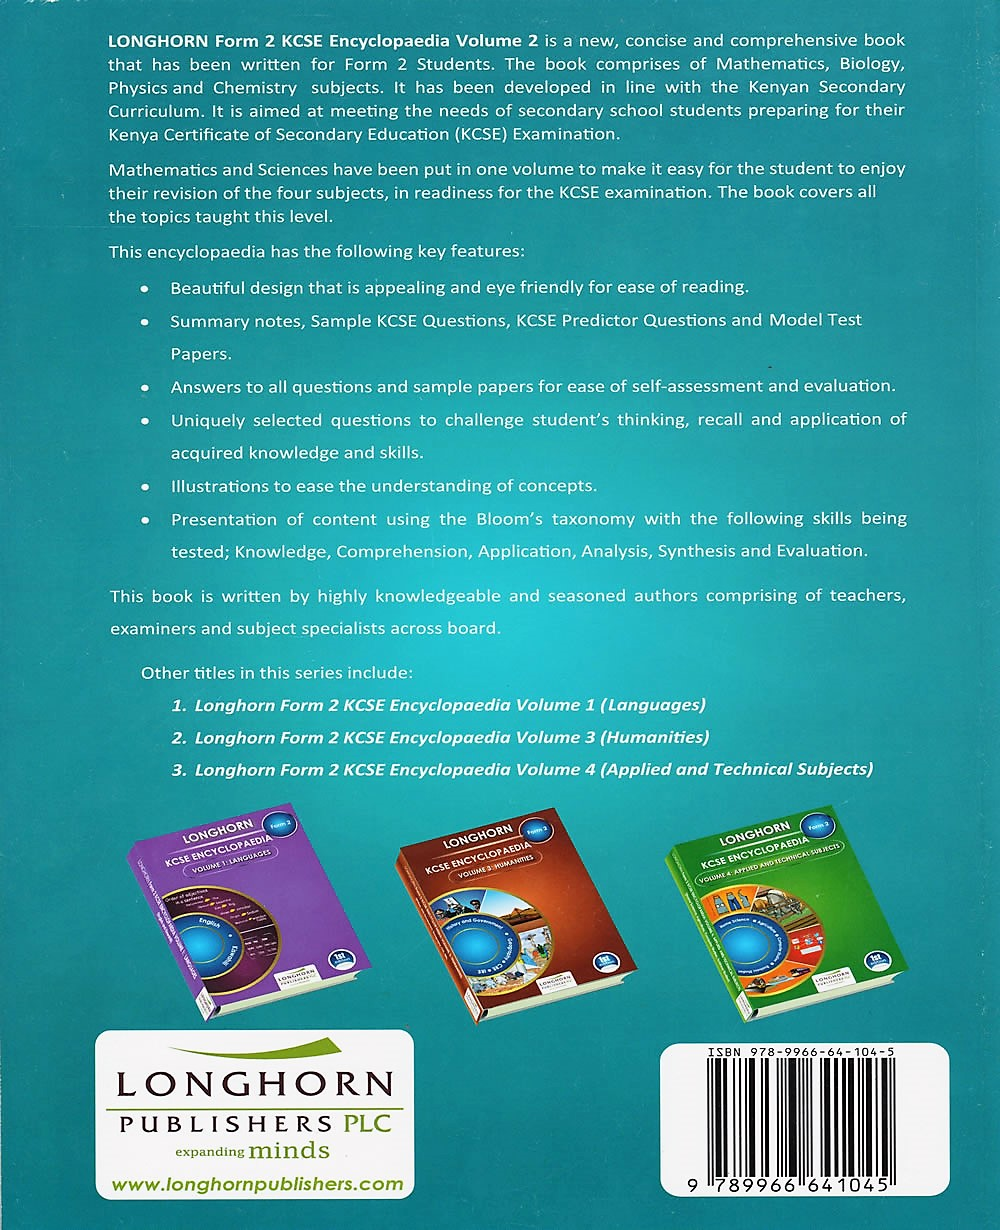 Longhorn KCSE Encyclopaedia F2 Vol 2 Maths & Sciences   Books, Stationery,  Computers, Laptops and more  Buy online and get free delivery on orders